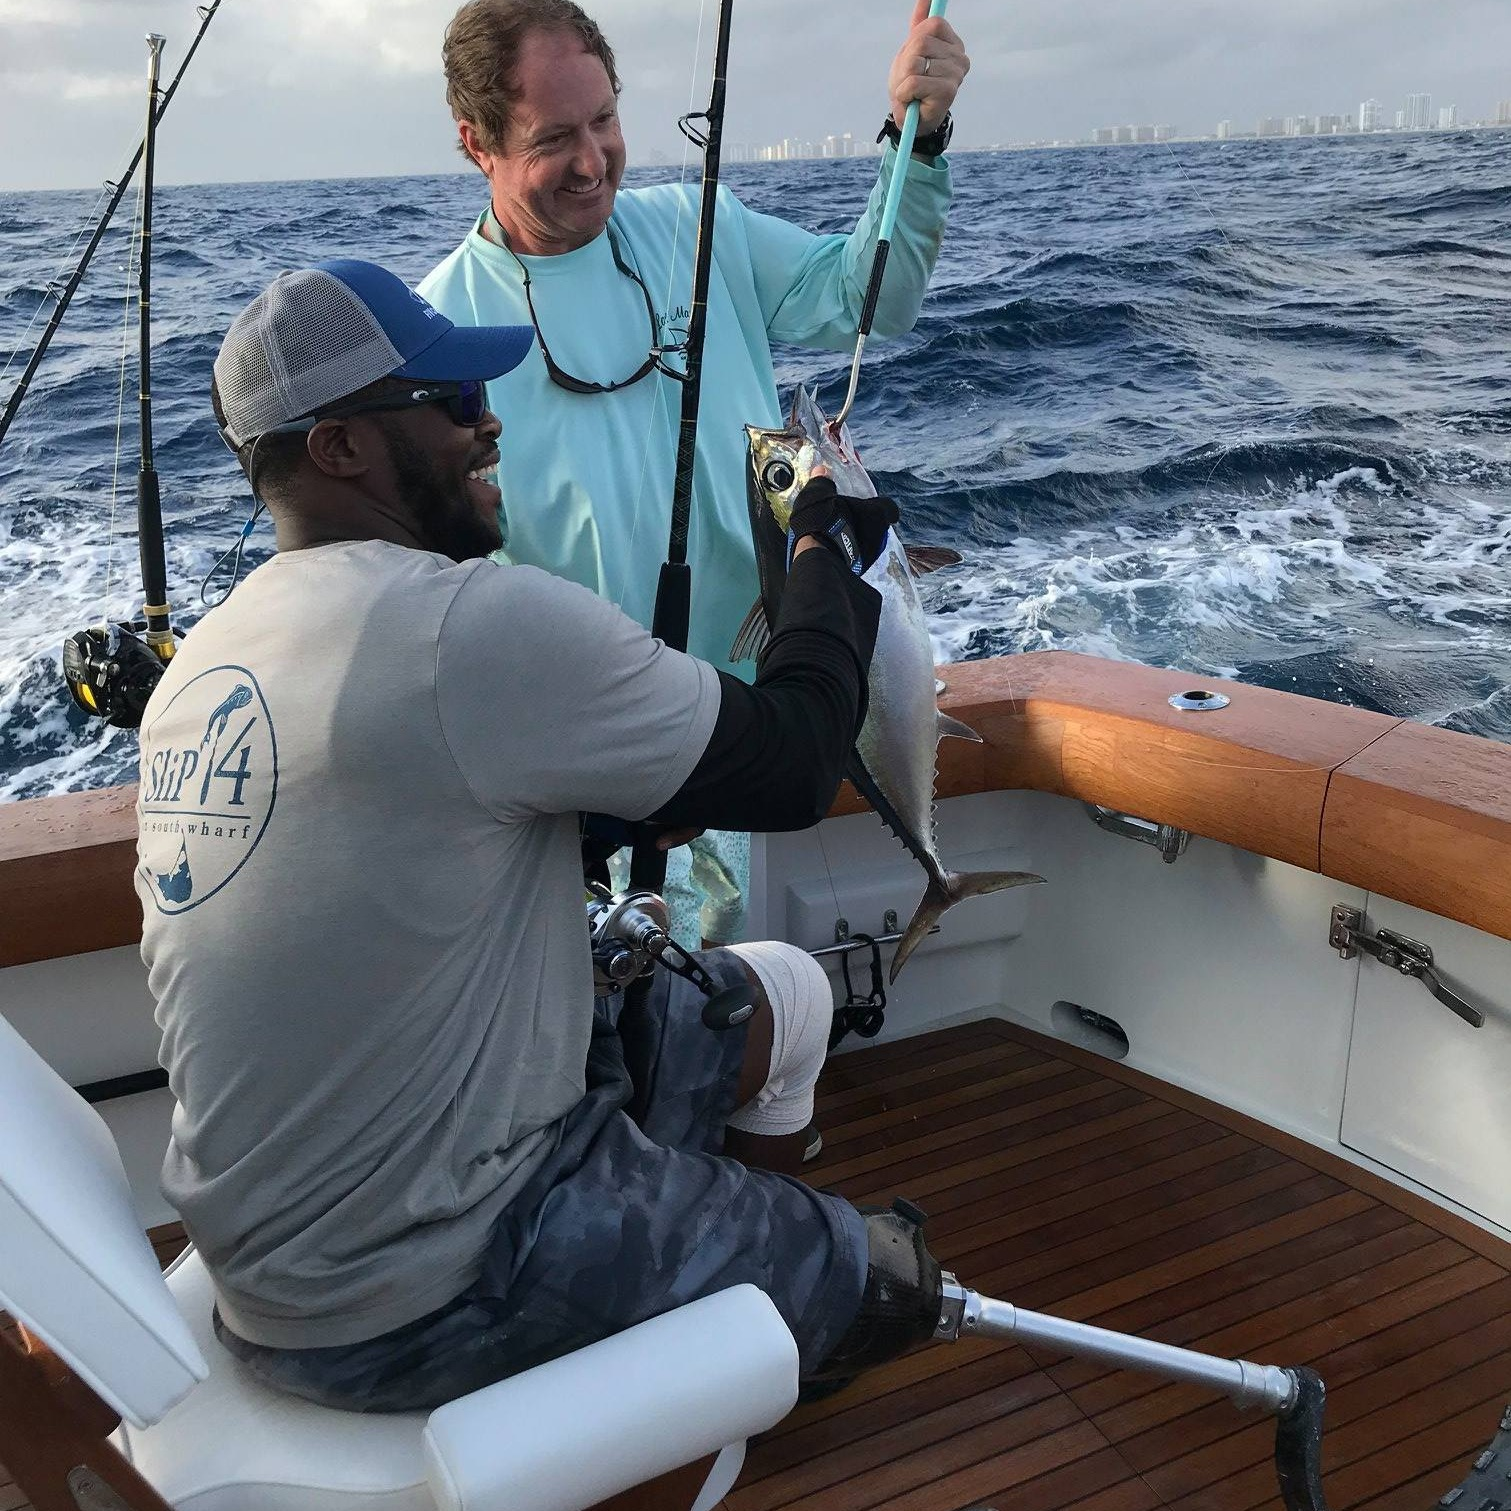 Fishing - It's the first type of event we ever hosted and what we are known for today. Our FFO Fishing Experiences provide the opportunity for Freedom Fighters to spend a day on the water.